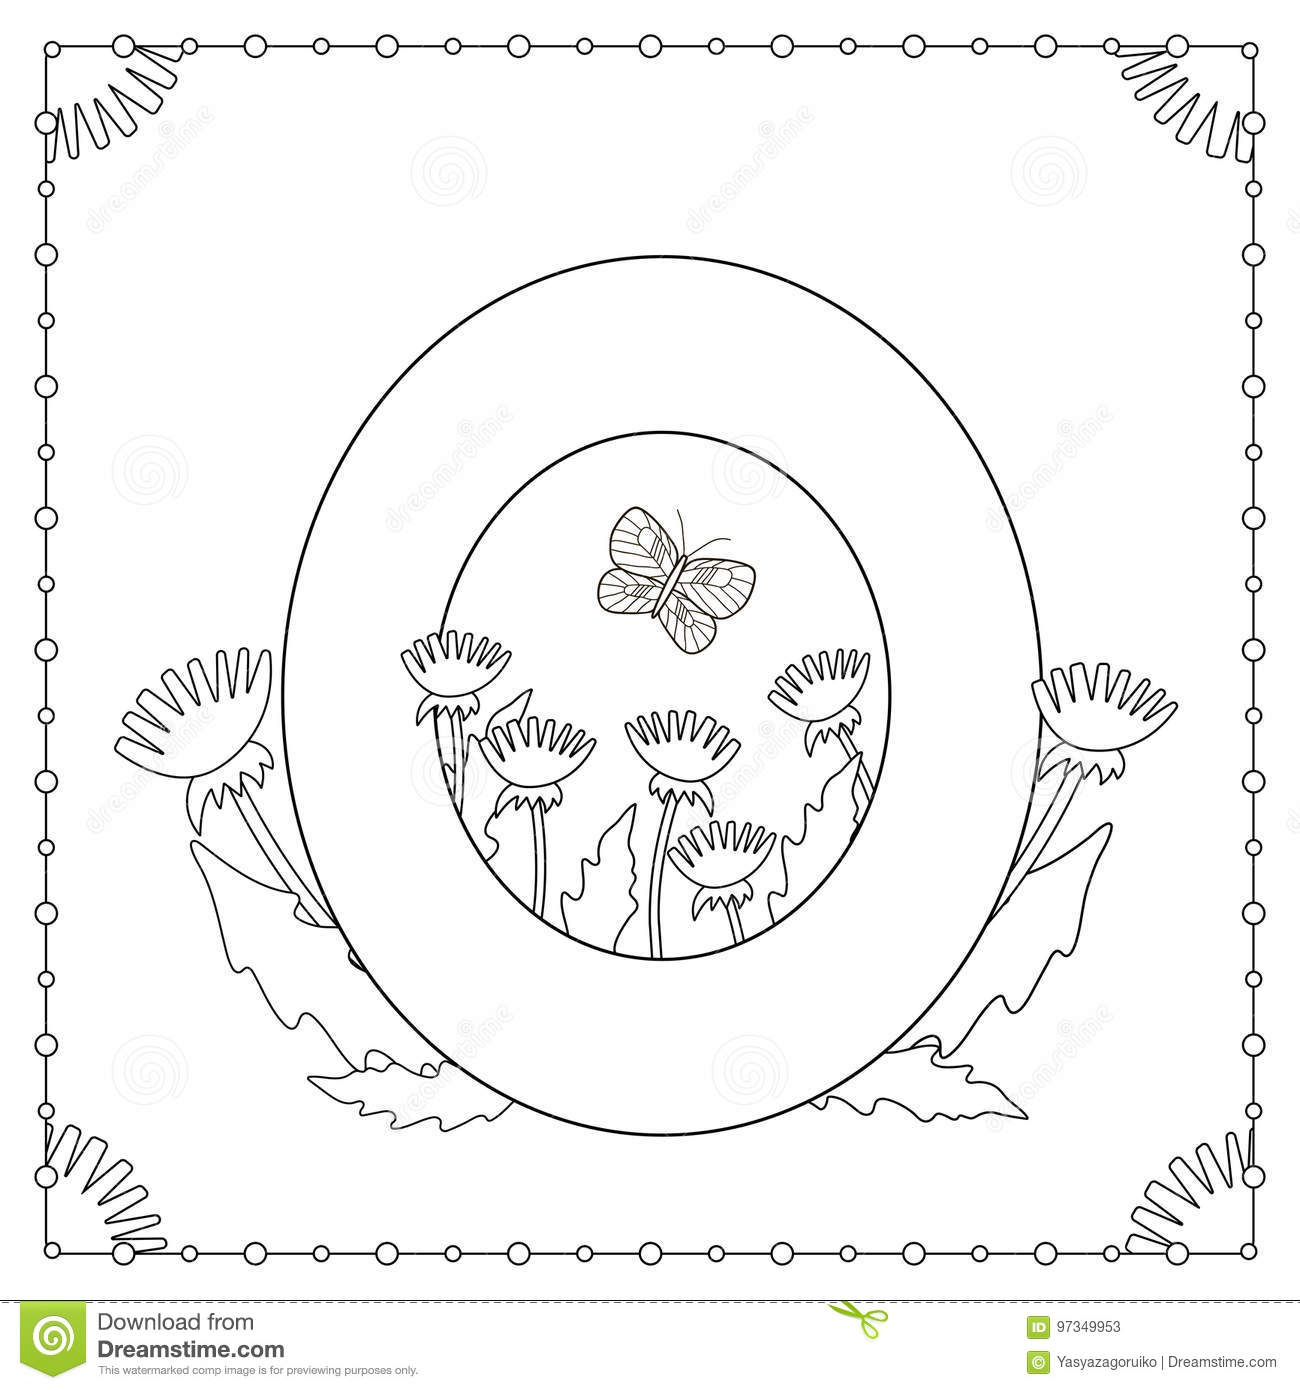 Download Alphabet Coloring Page Stock Vector Illustration Of Graphic